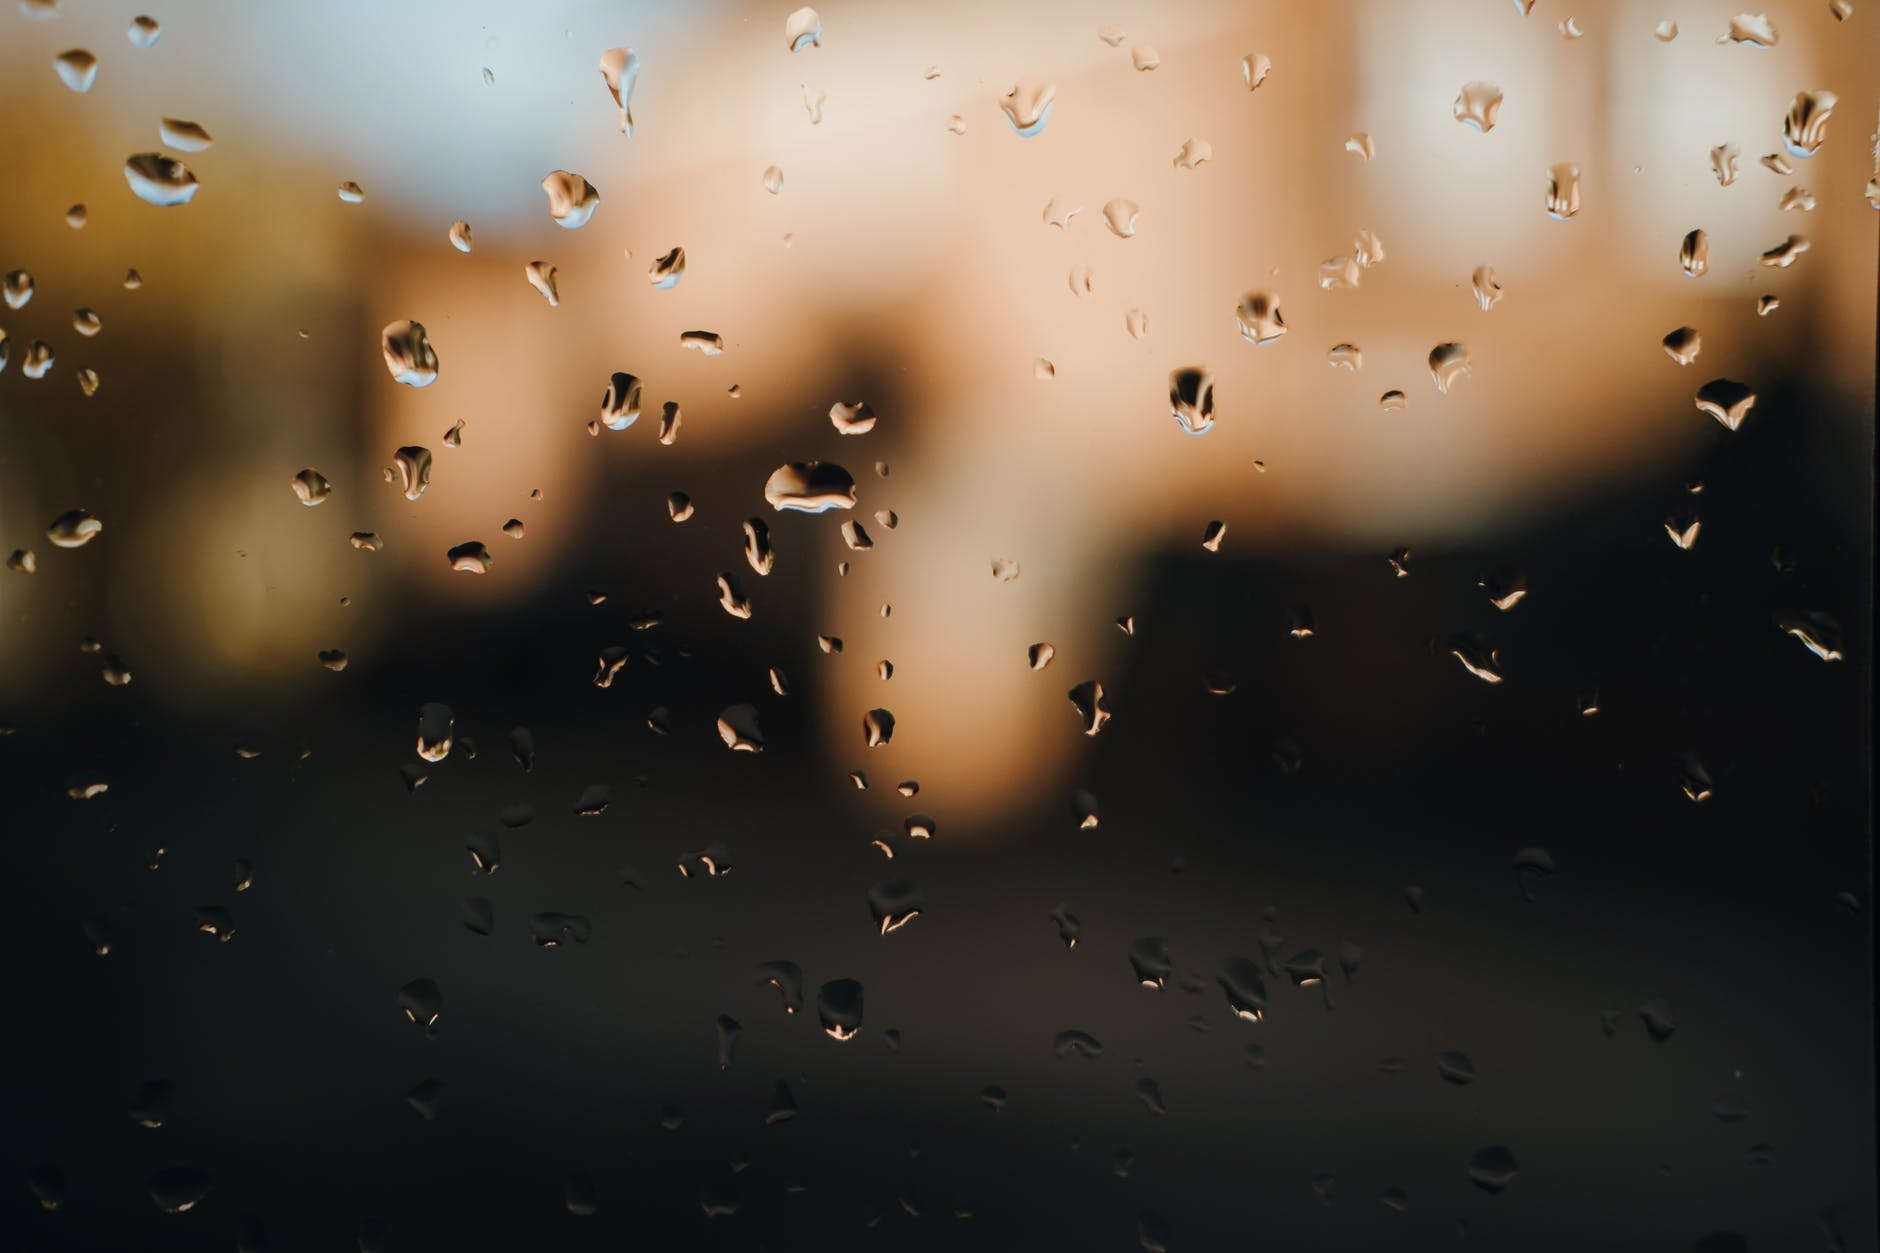 background of droplets on window during rain